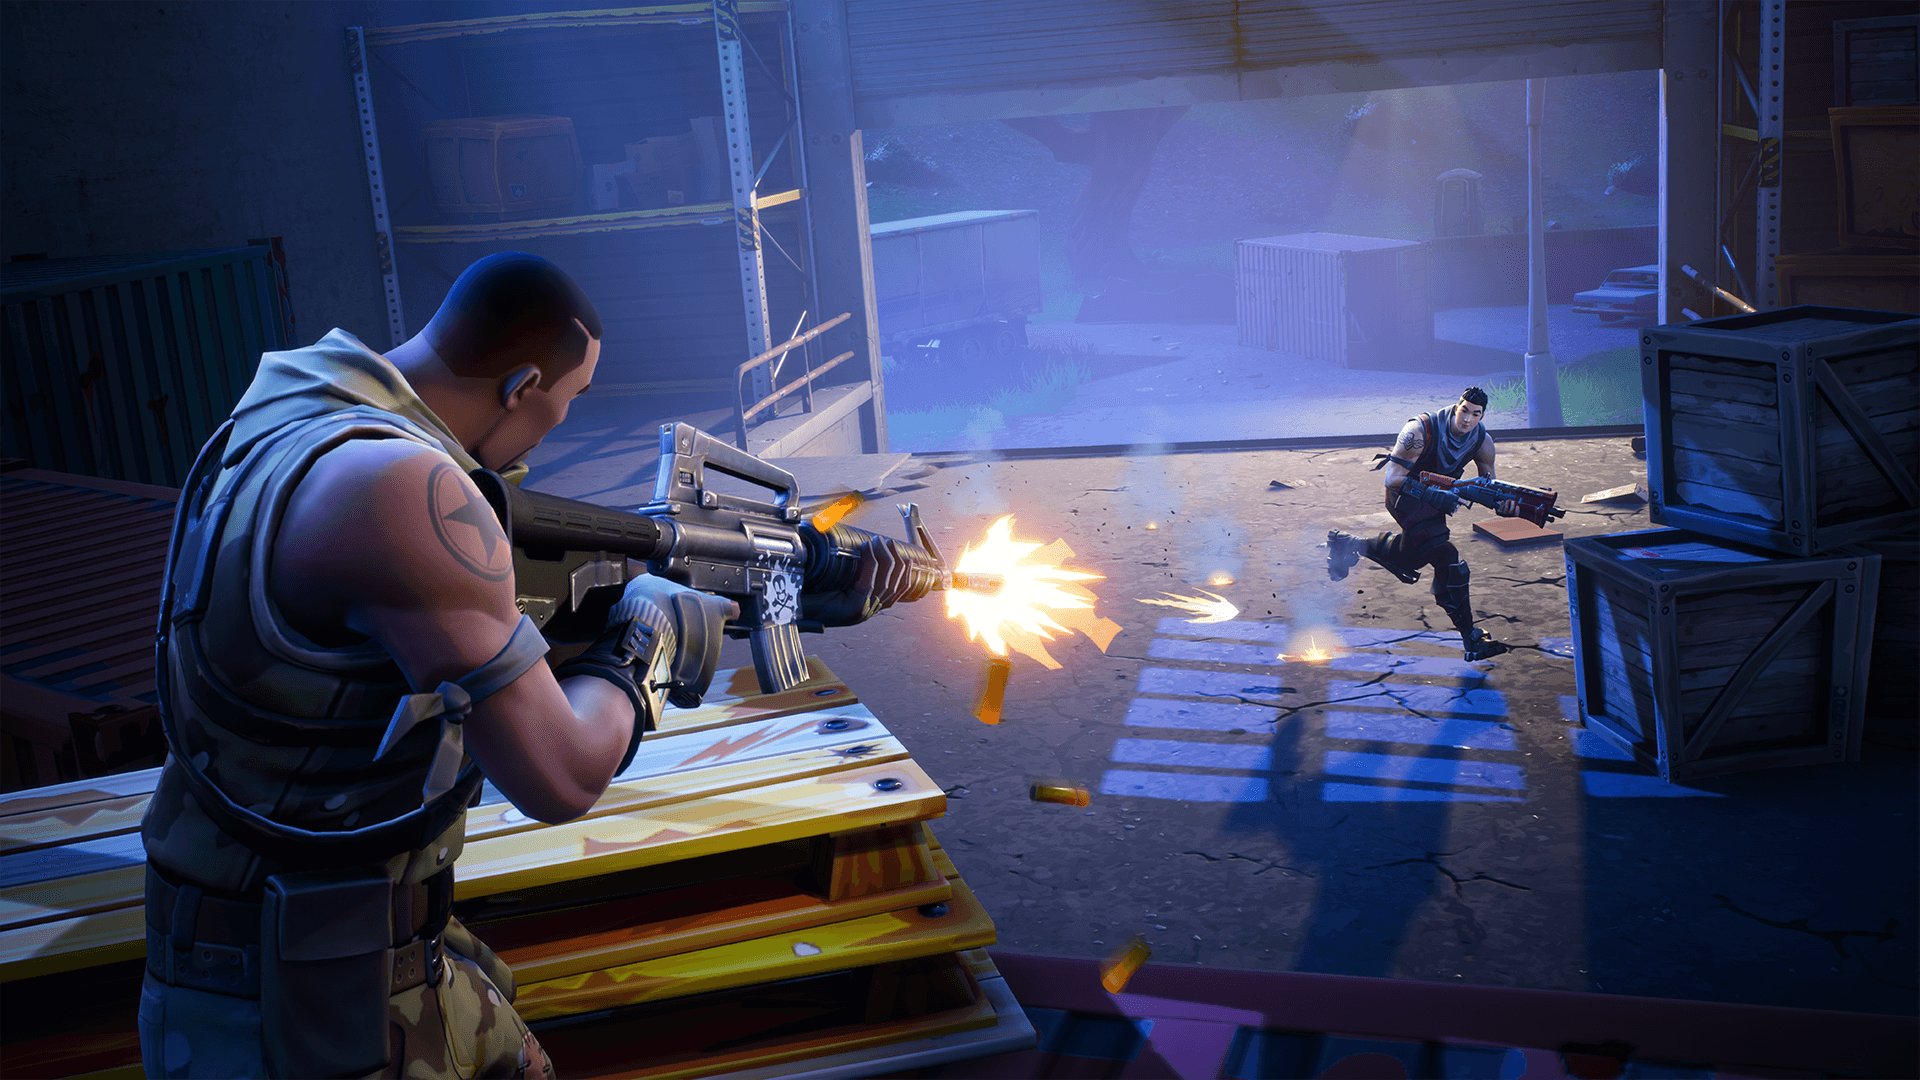 Fortnite Ps4 In Game Chat Fortnite Future Updates Will Improve Voice Chat Uncap Ps4 Fps More